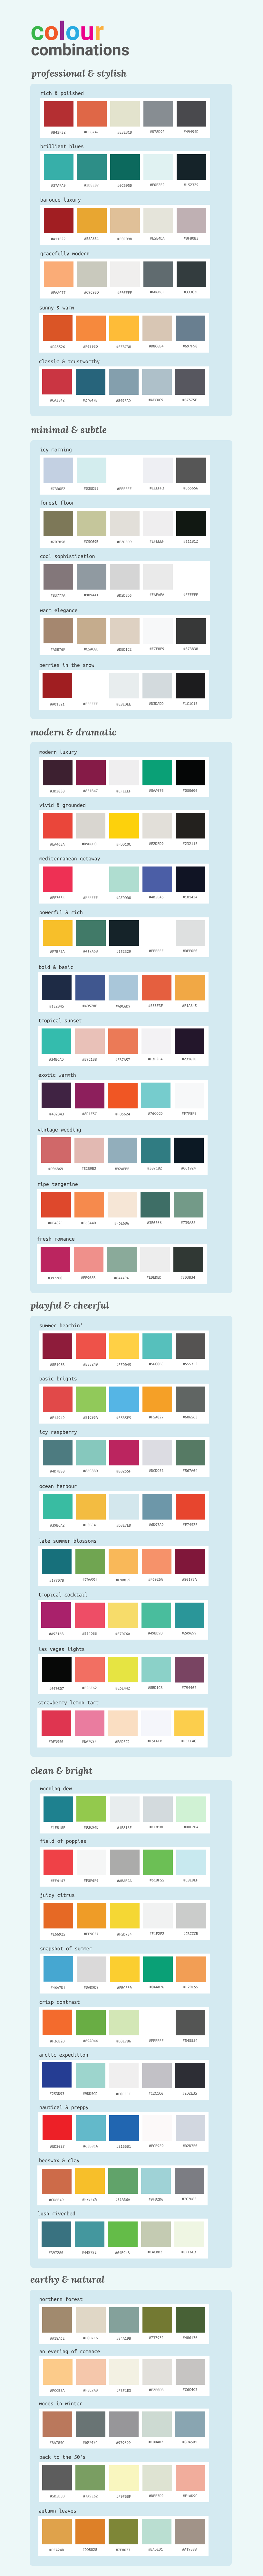 how to pick colors